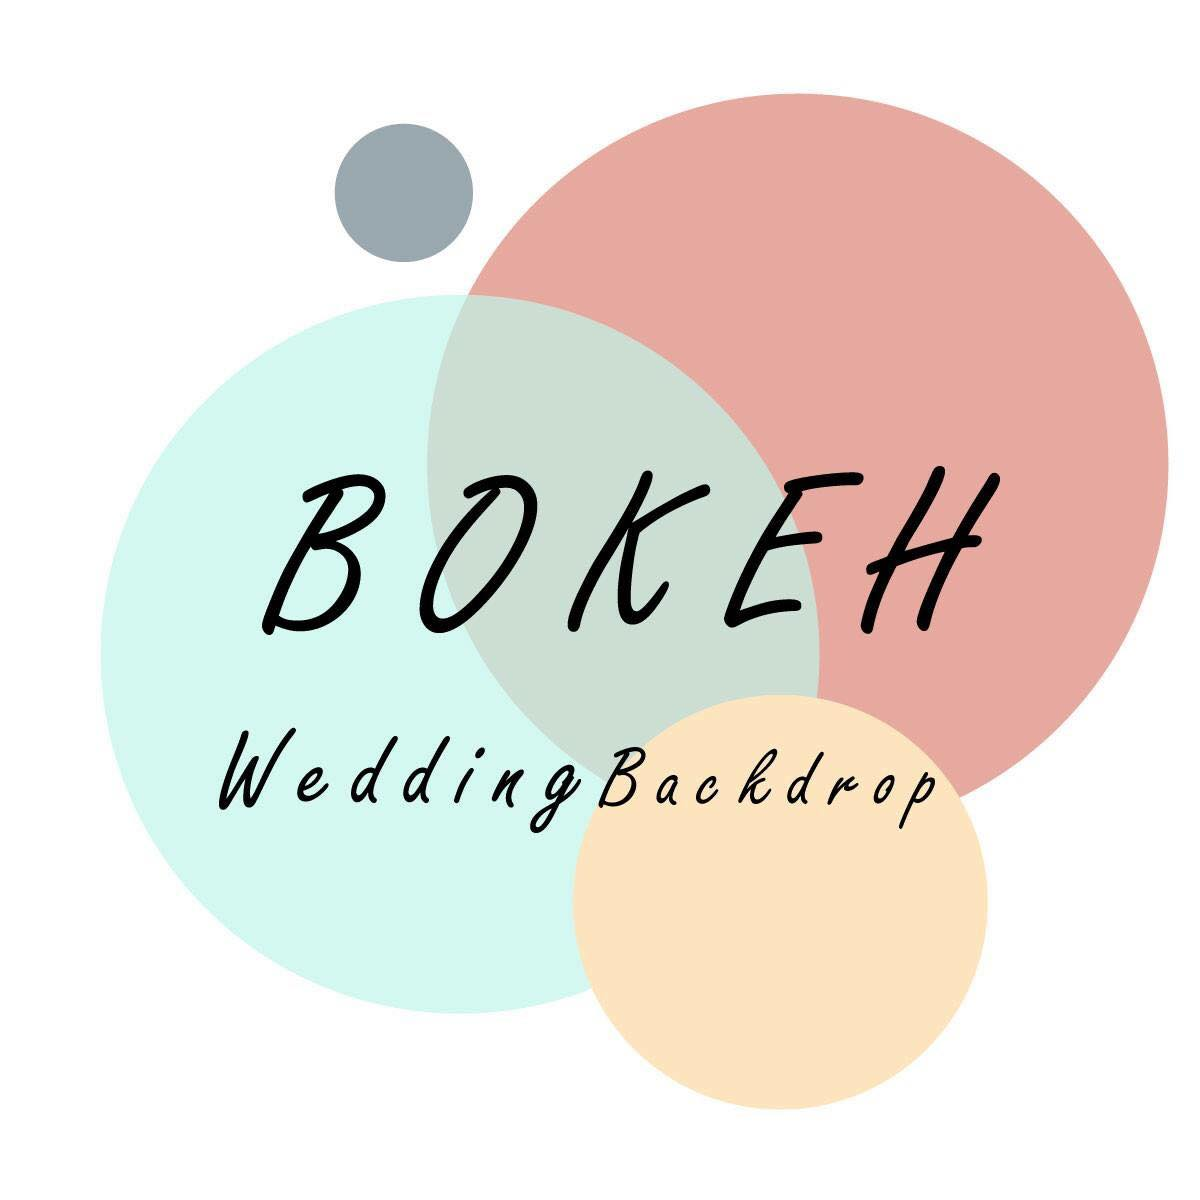 BOKEH Wedding